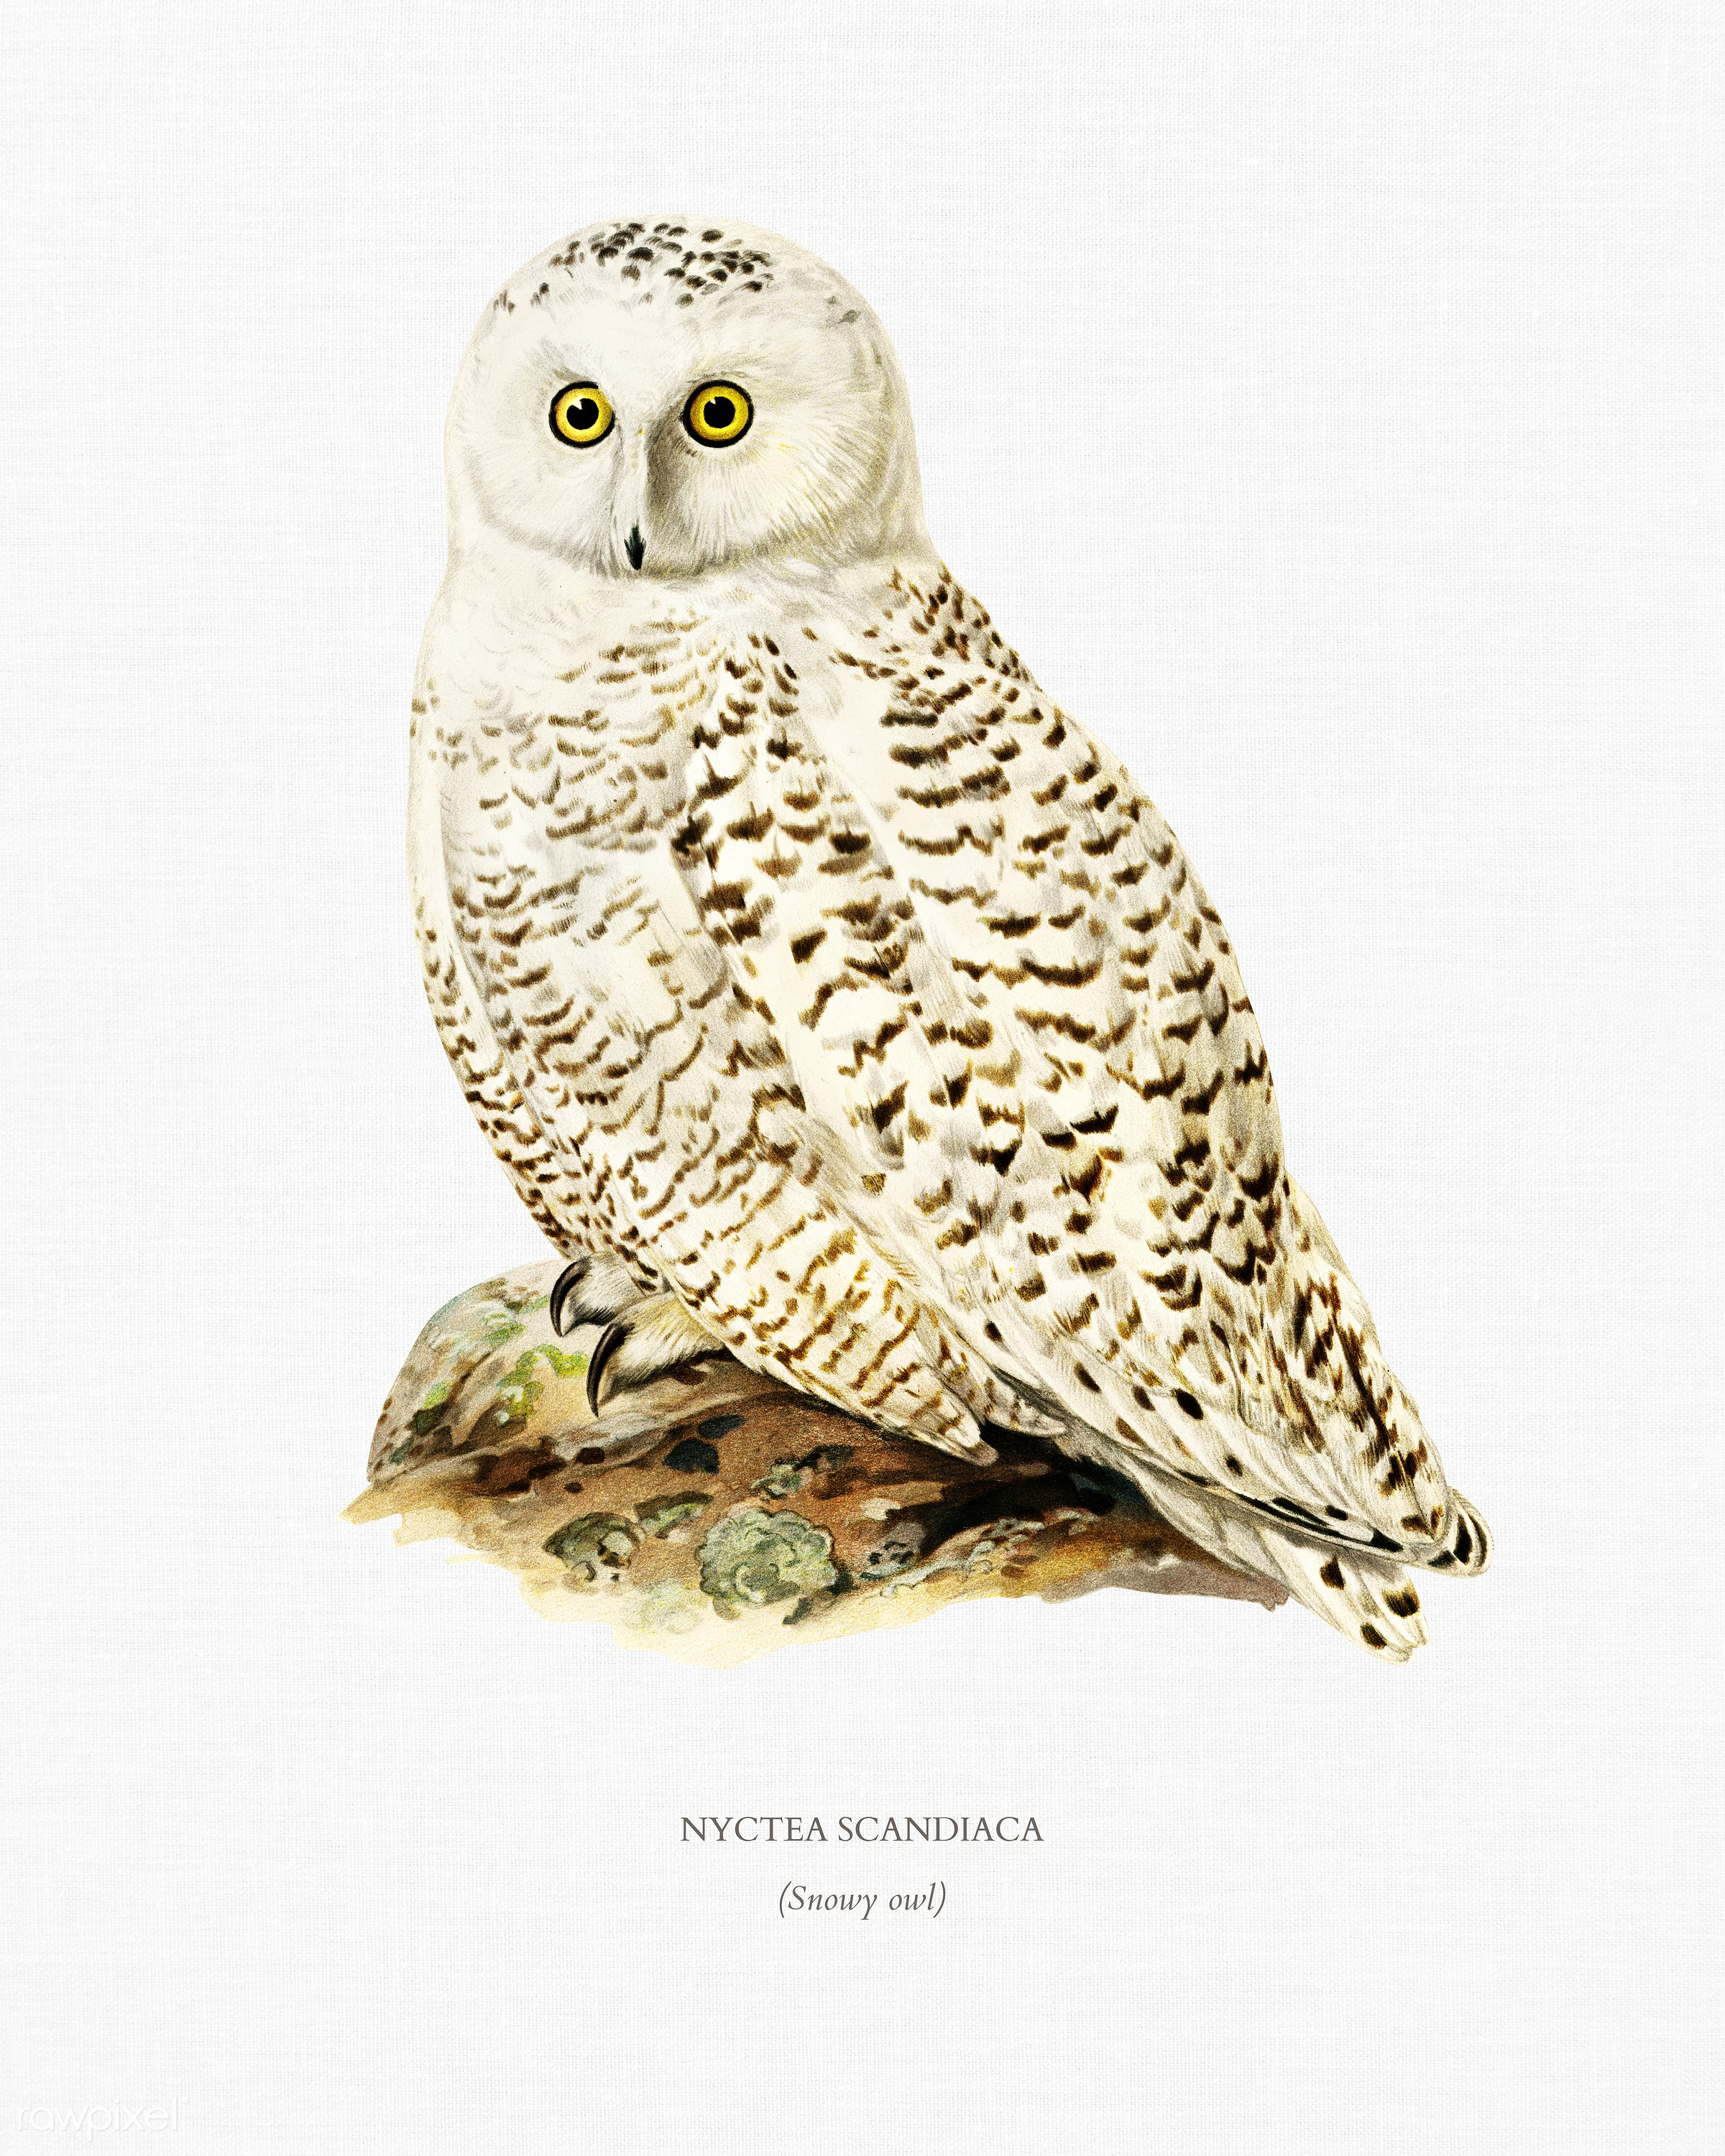 Snowy owl (Nyctea Scandiaca) illustrated by the von Wright brothers. Digitally enhanced from our own 1929 folio version of...